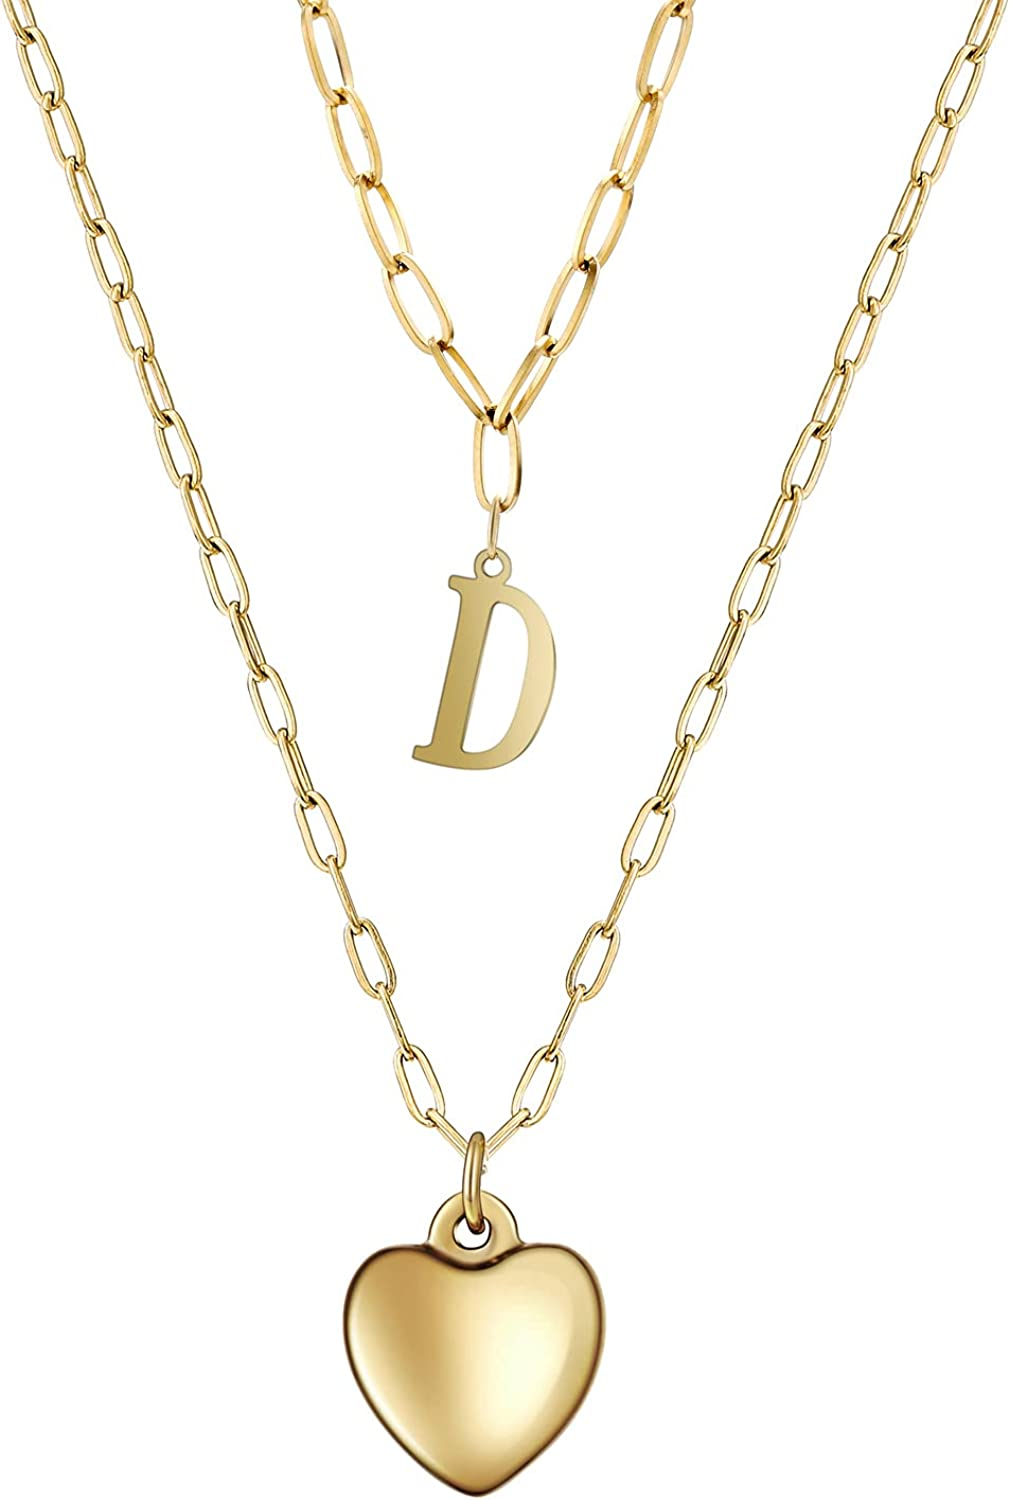 lureme Gold Initial Necklaces for Women Girls, 14K Gold Plated Layered Heart Necklace Paperclip Link Chain Necklace (nl006280)